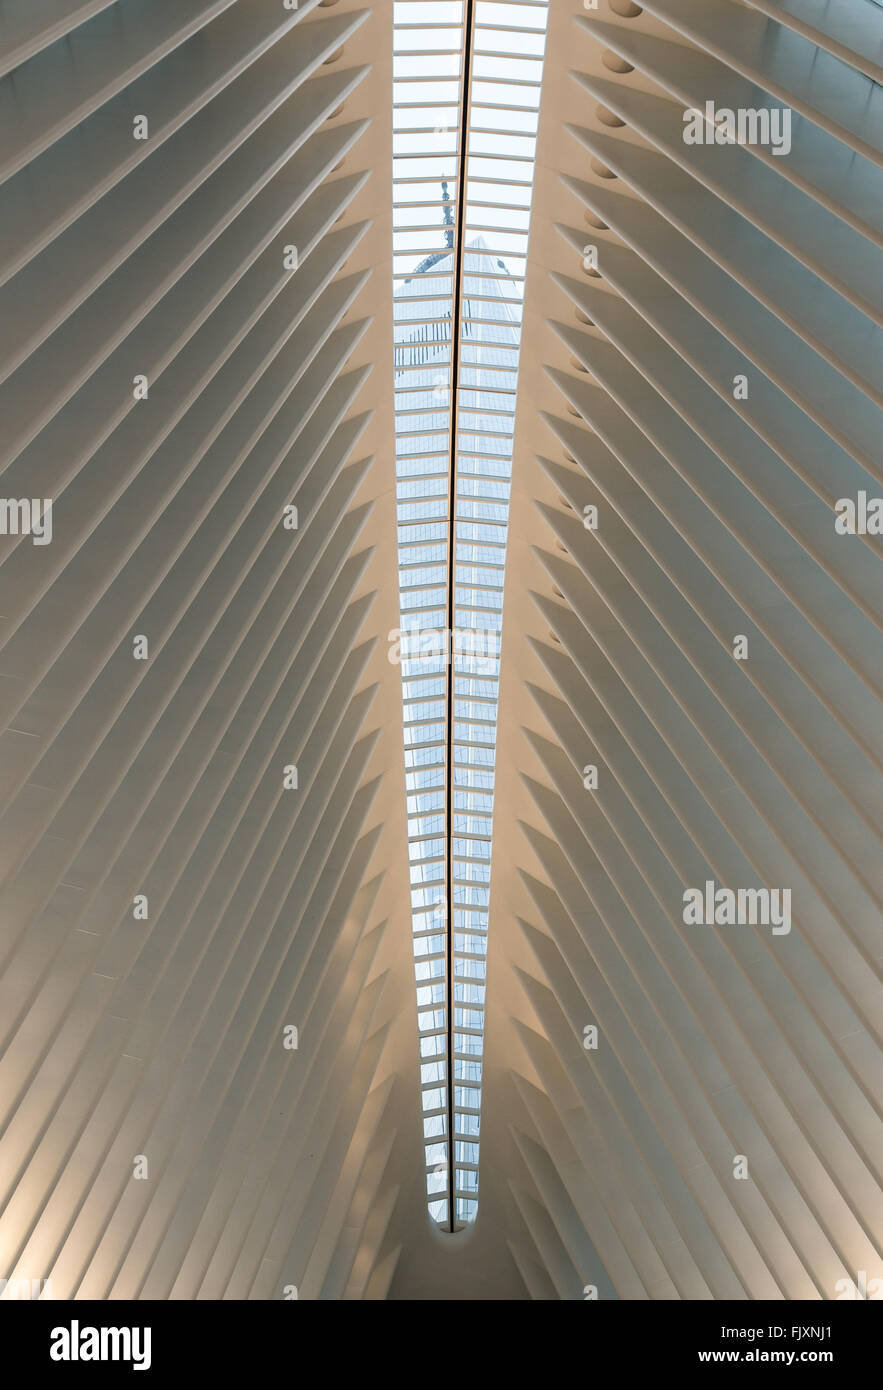 View Of One World Trade Center Freedom Tower Through The Sunlight FJXNJ1